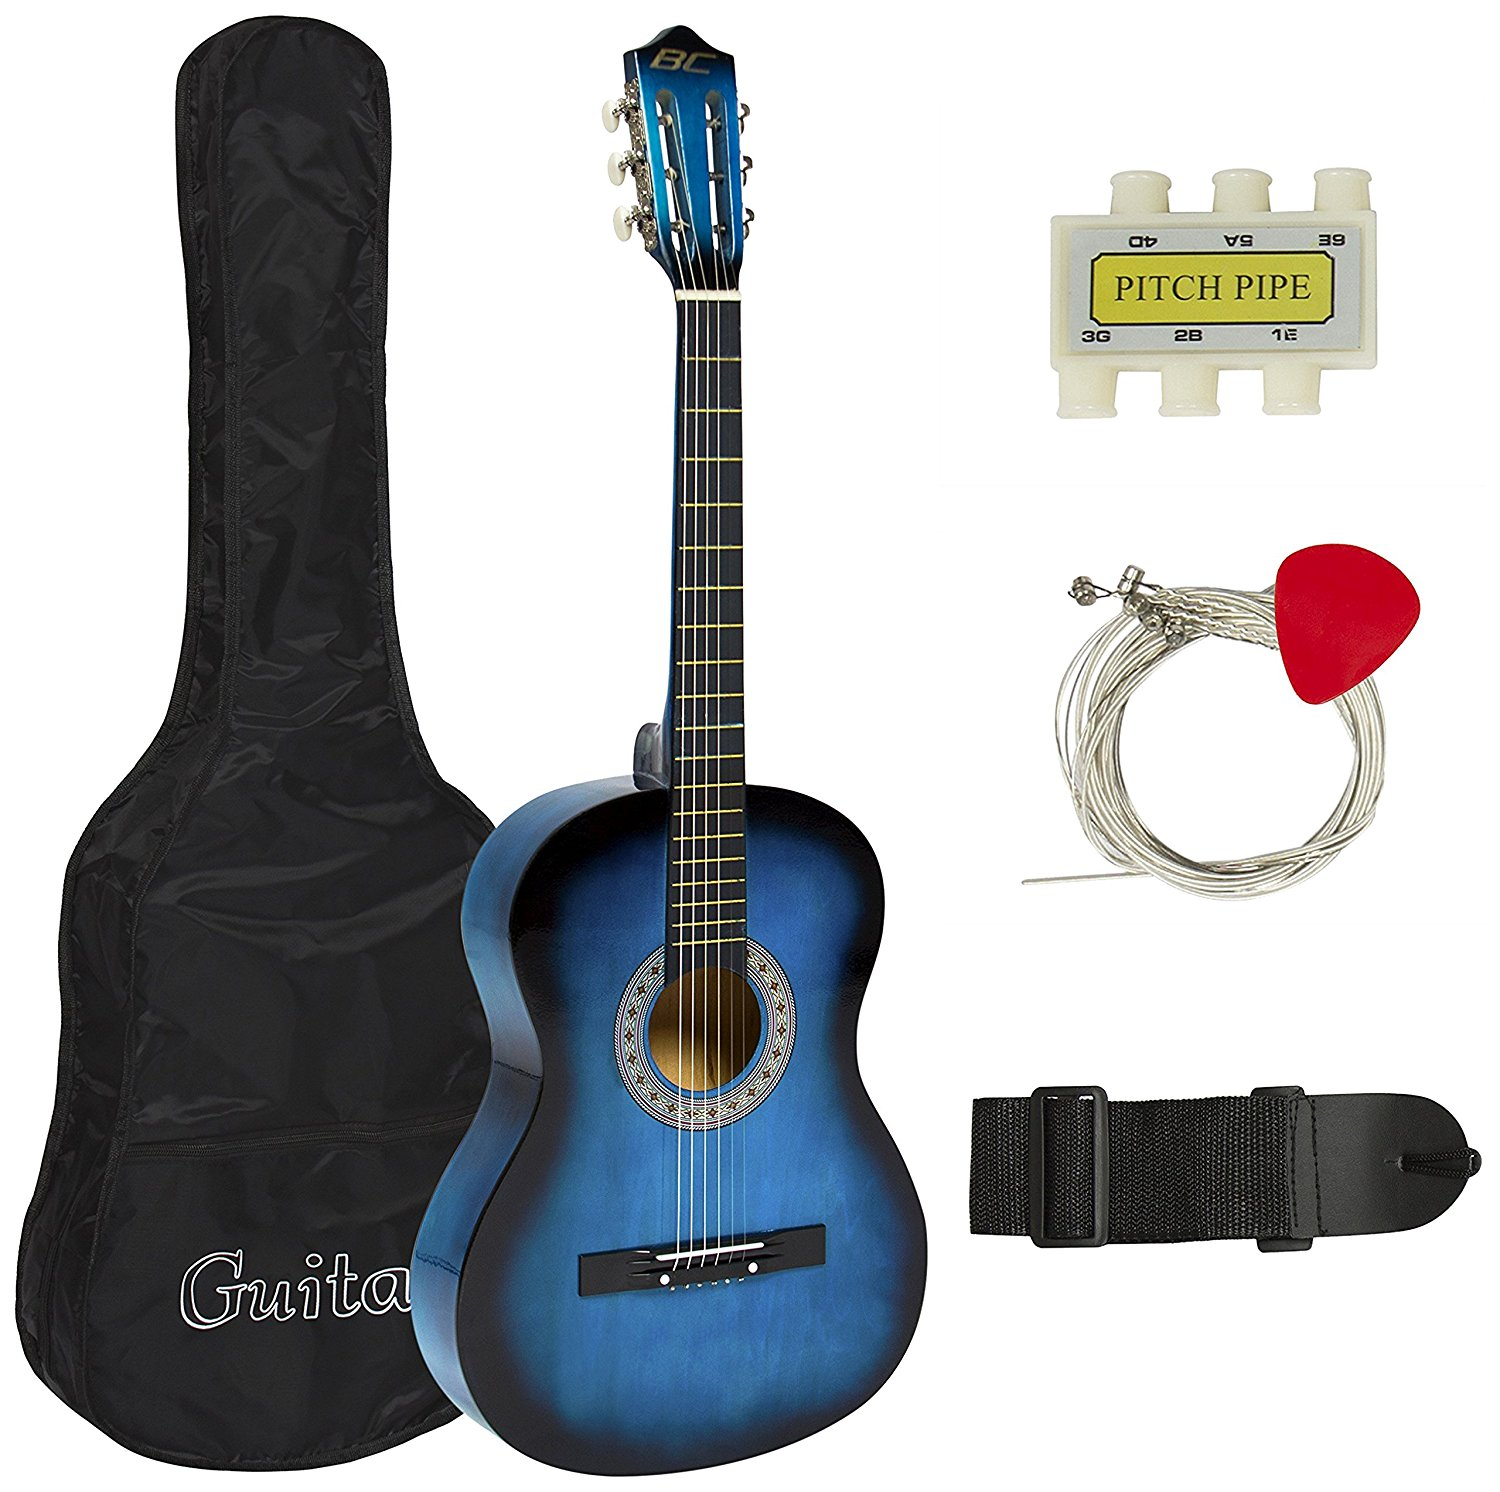 Best Choice Products Beginners Acoustic Guitar with Case, Strap, Tuner and Pick, Blue by Best Choice Products